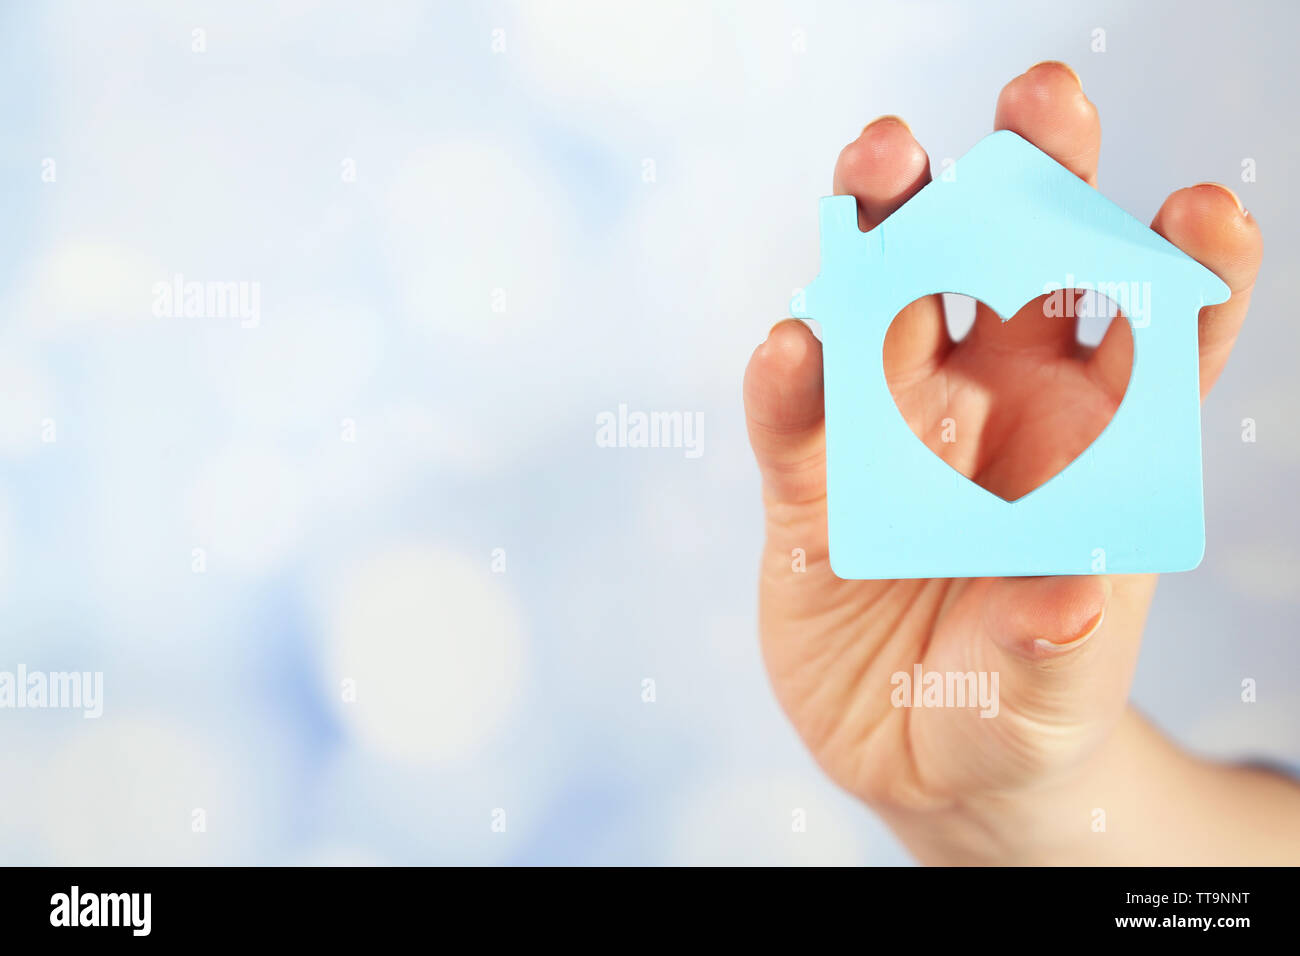 Female hand with model of house on blurred background - Stock Image